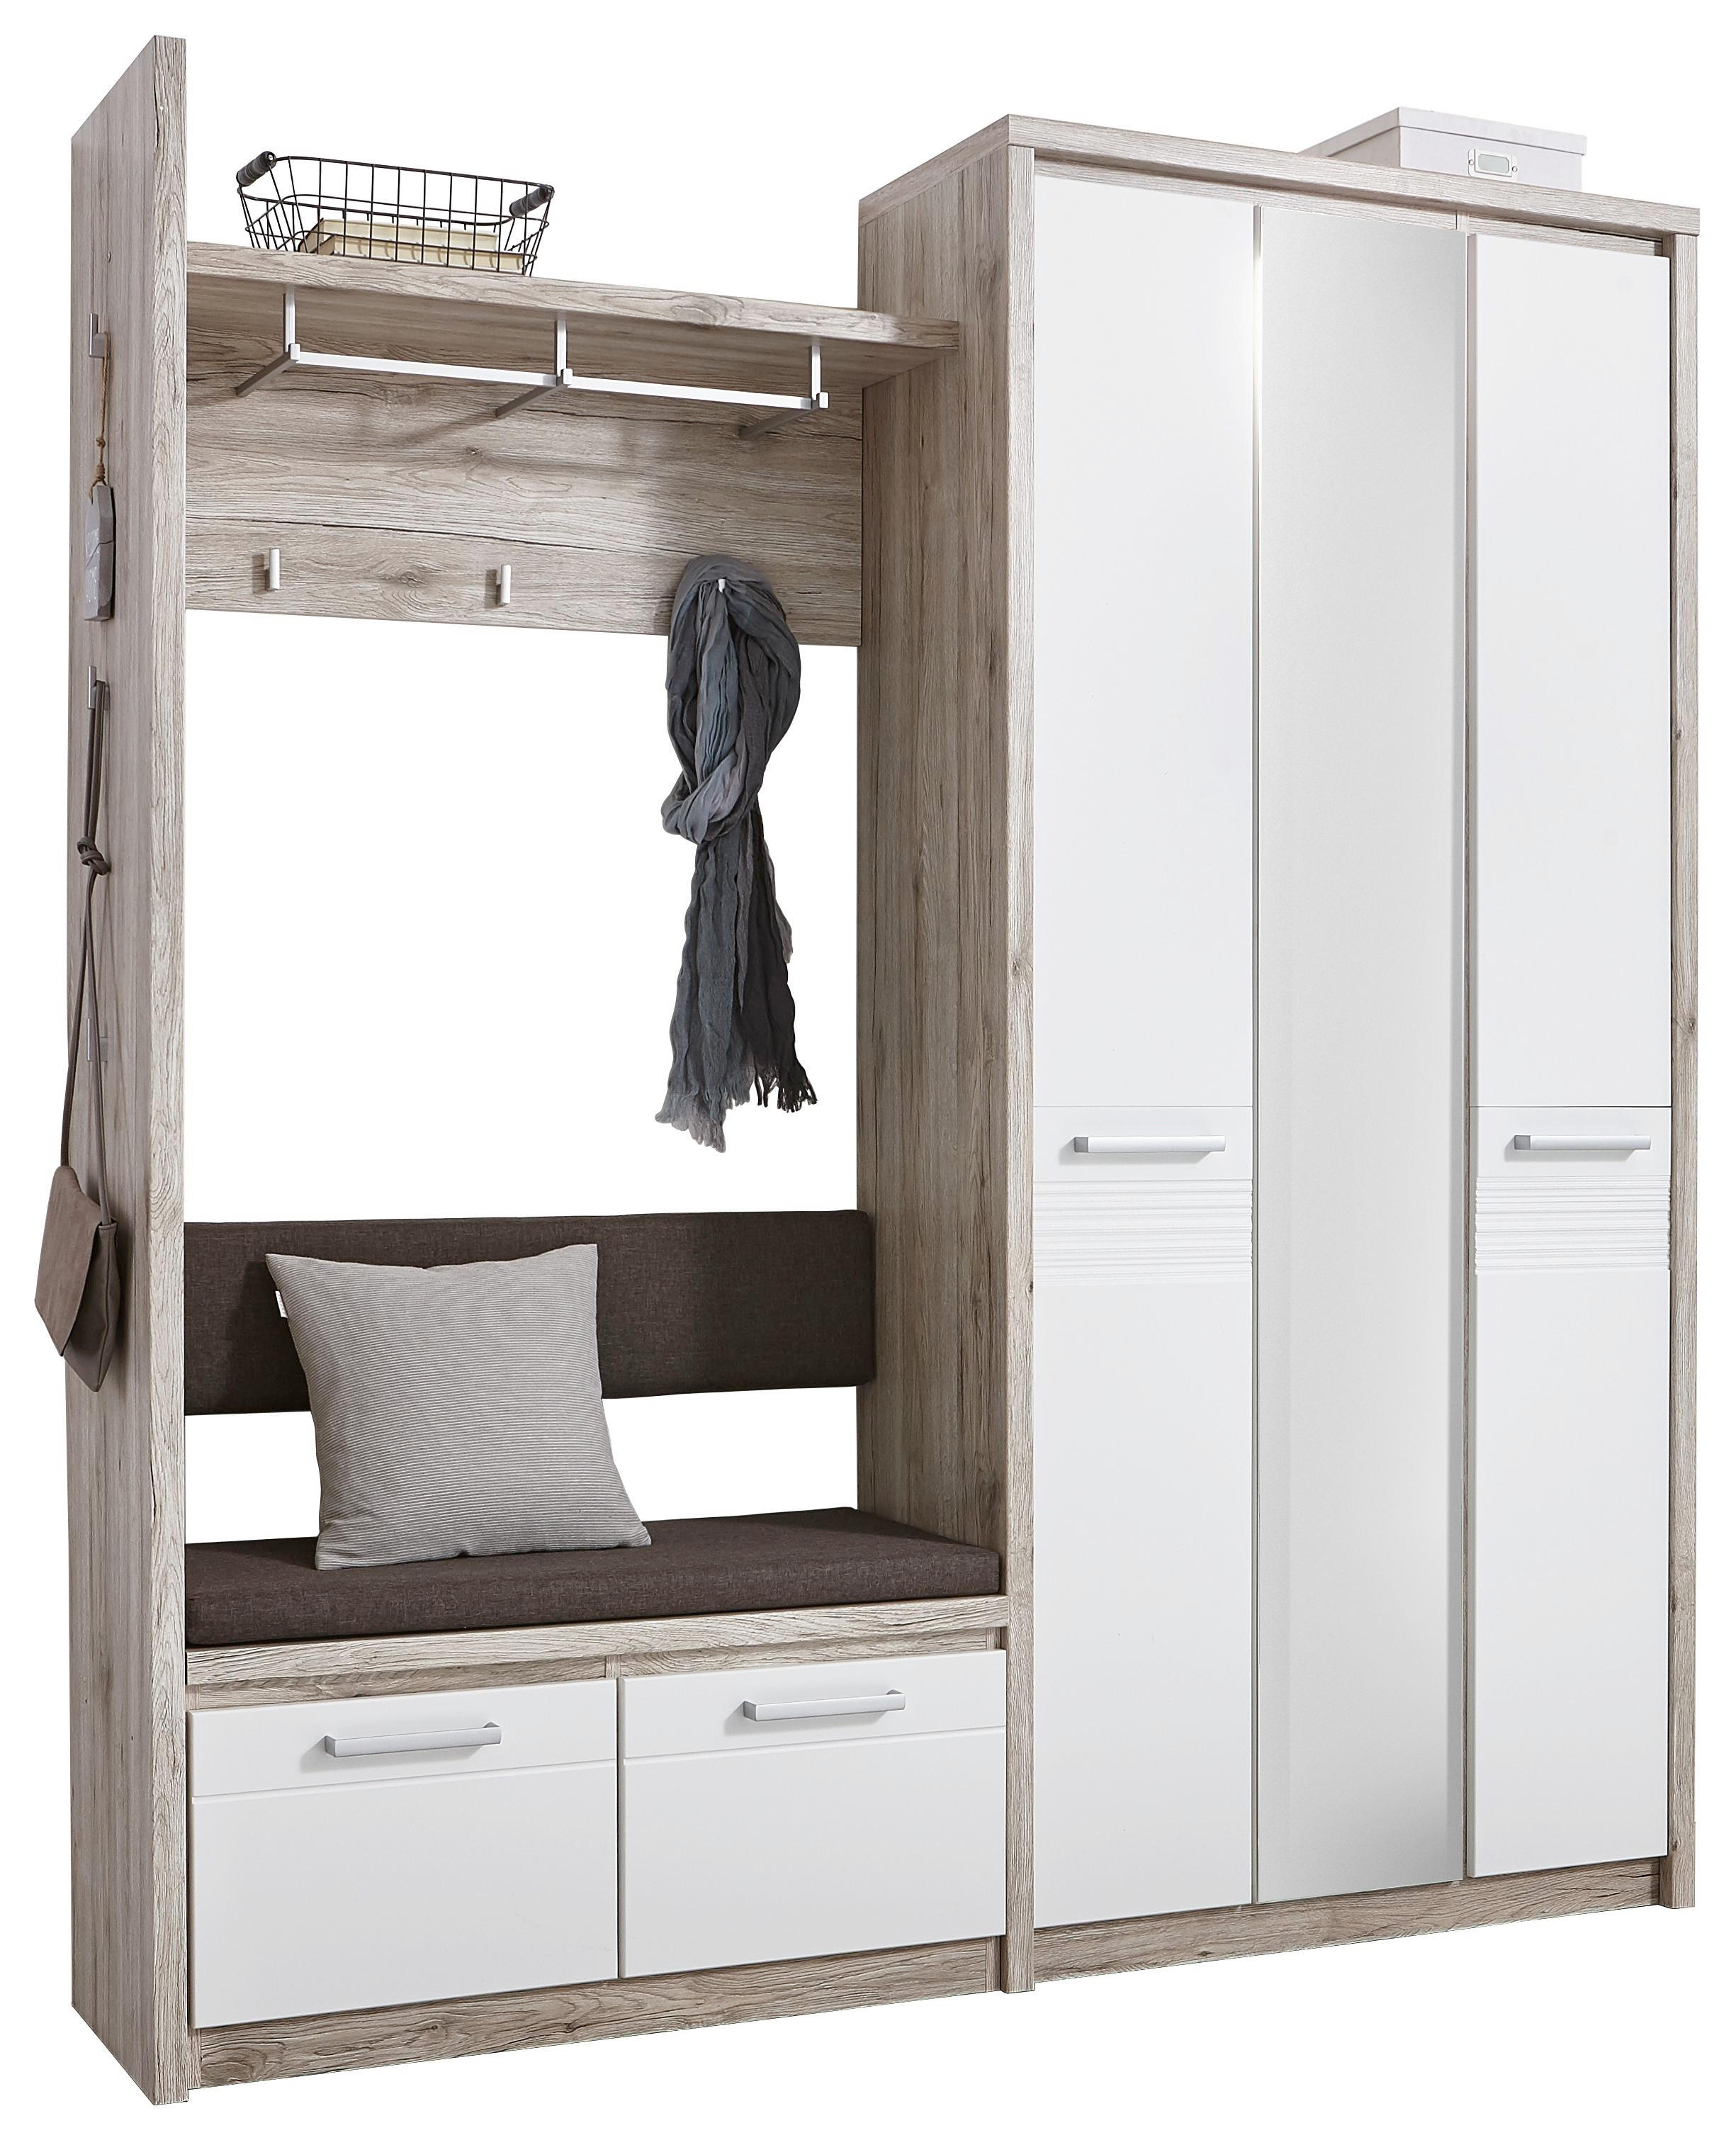 Garderobe Kaufen Garderobe Design Good Spinder Design Noa Garderobe With Garderobe